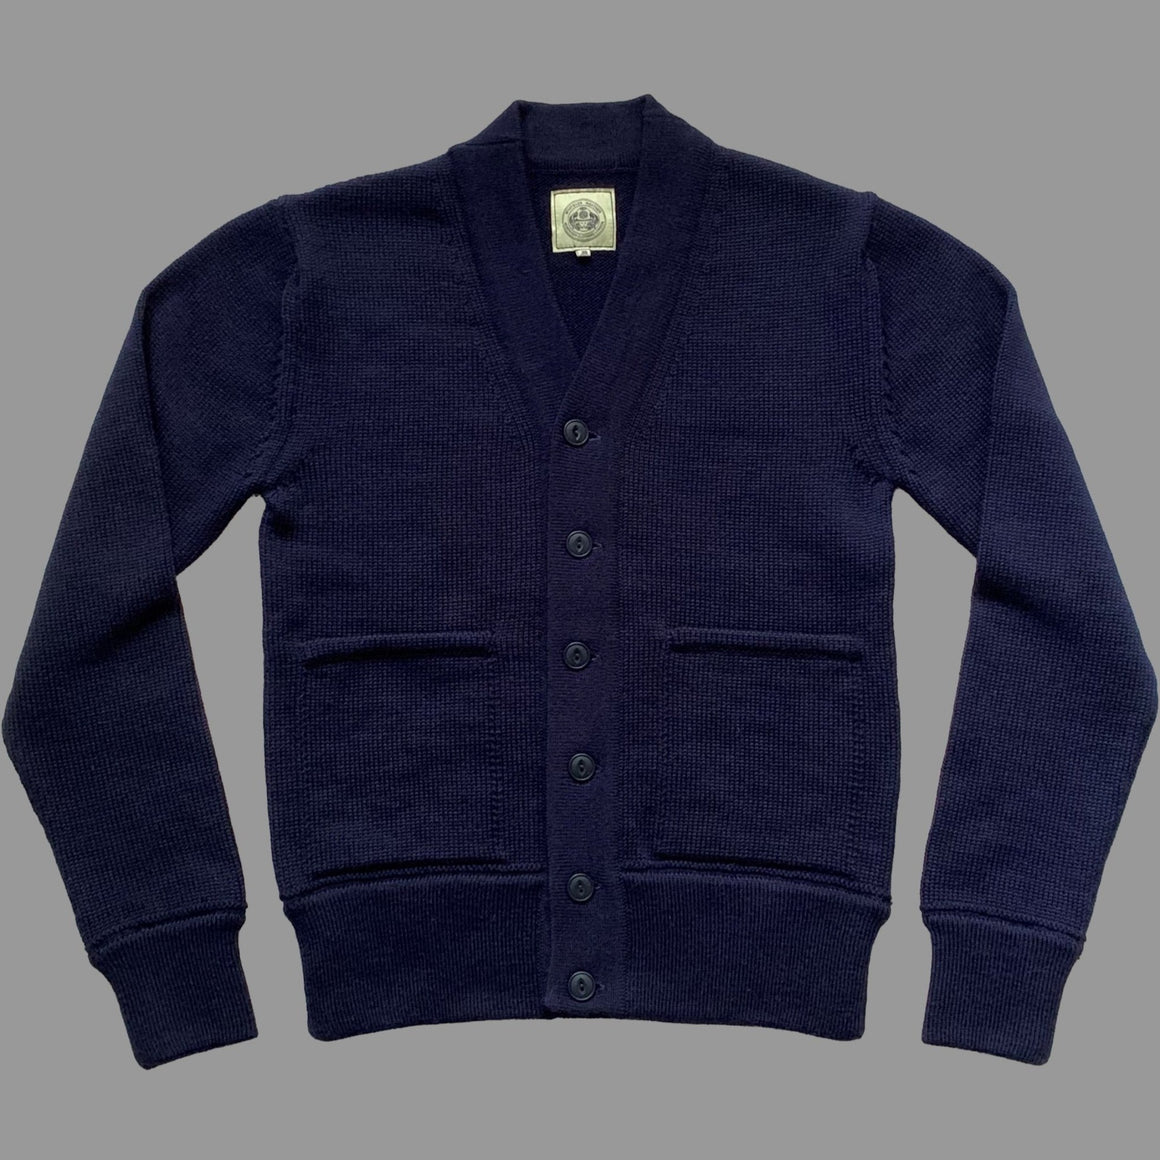 NEW - THE ENGINEER CARDIGAN - NAVY